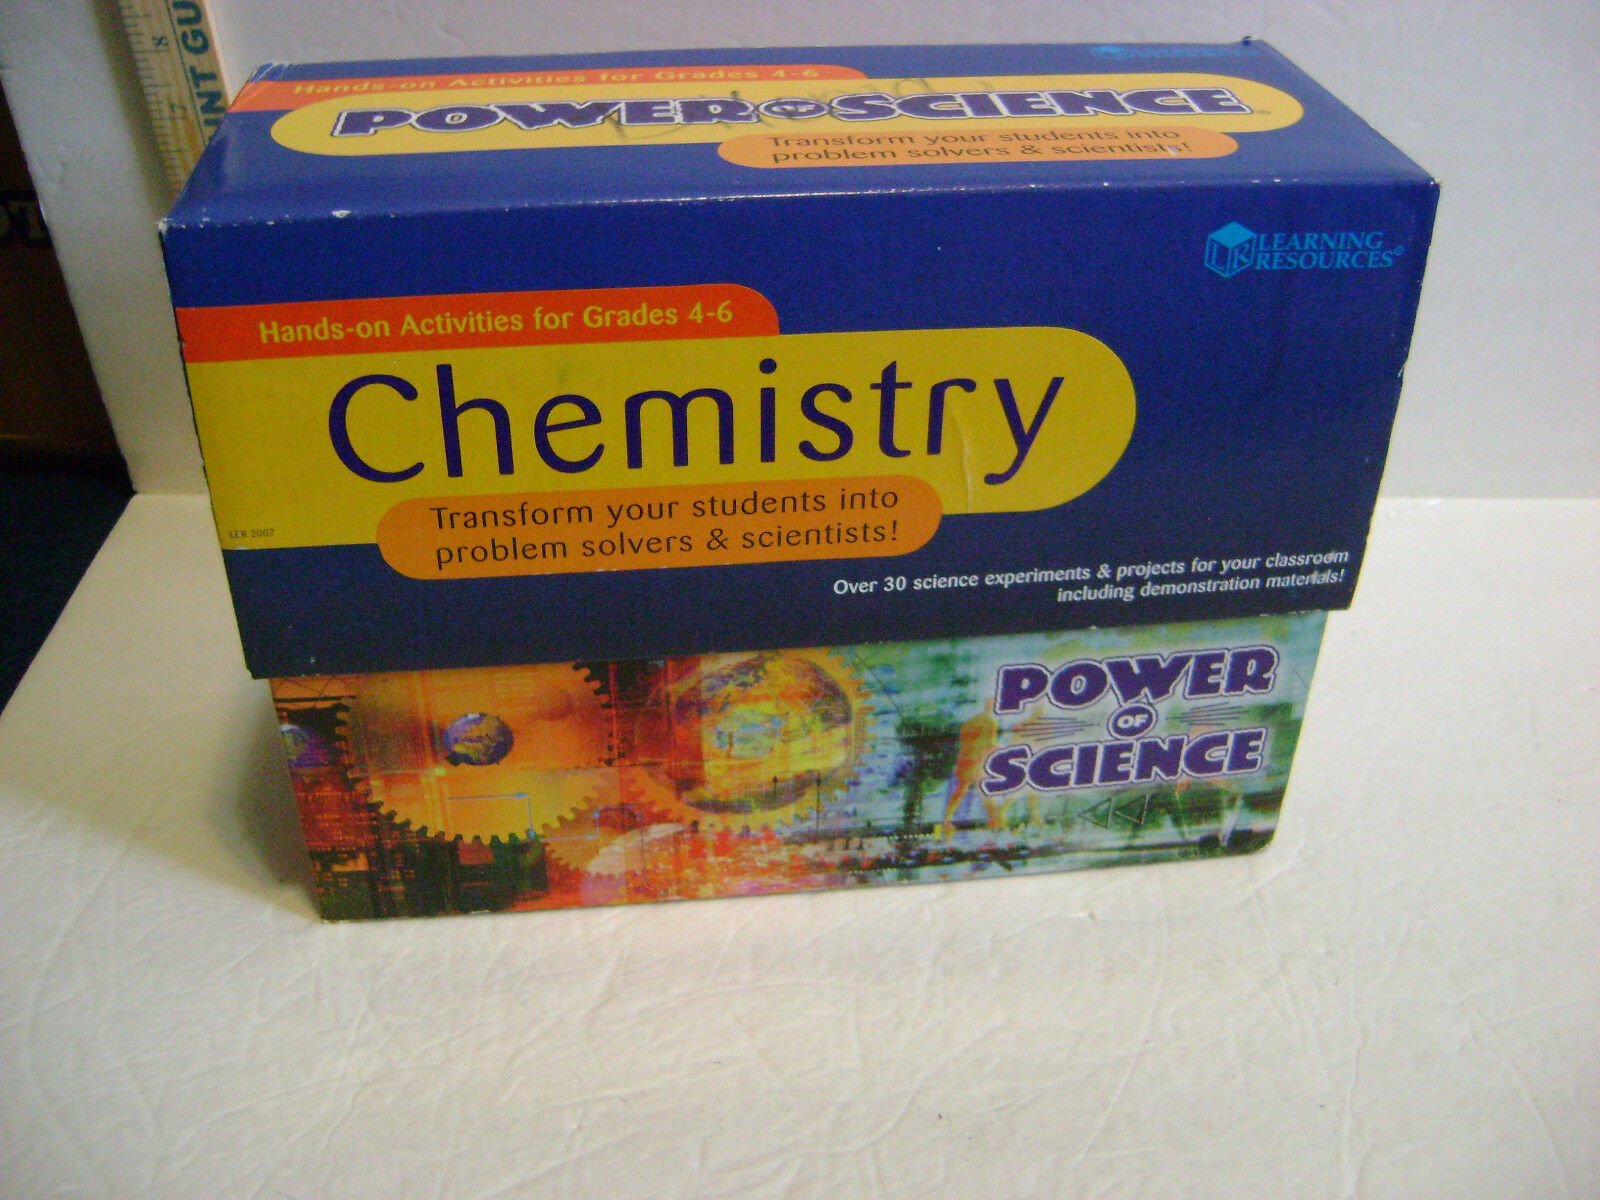 LEARNING RESOURCES CHEMISTRY SET FOR GRADES 4-6 - COMPLETE